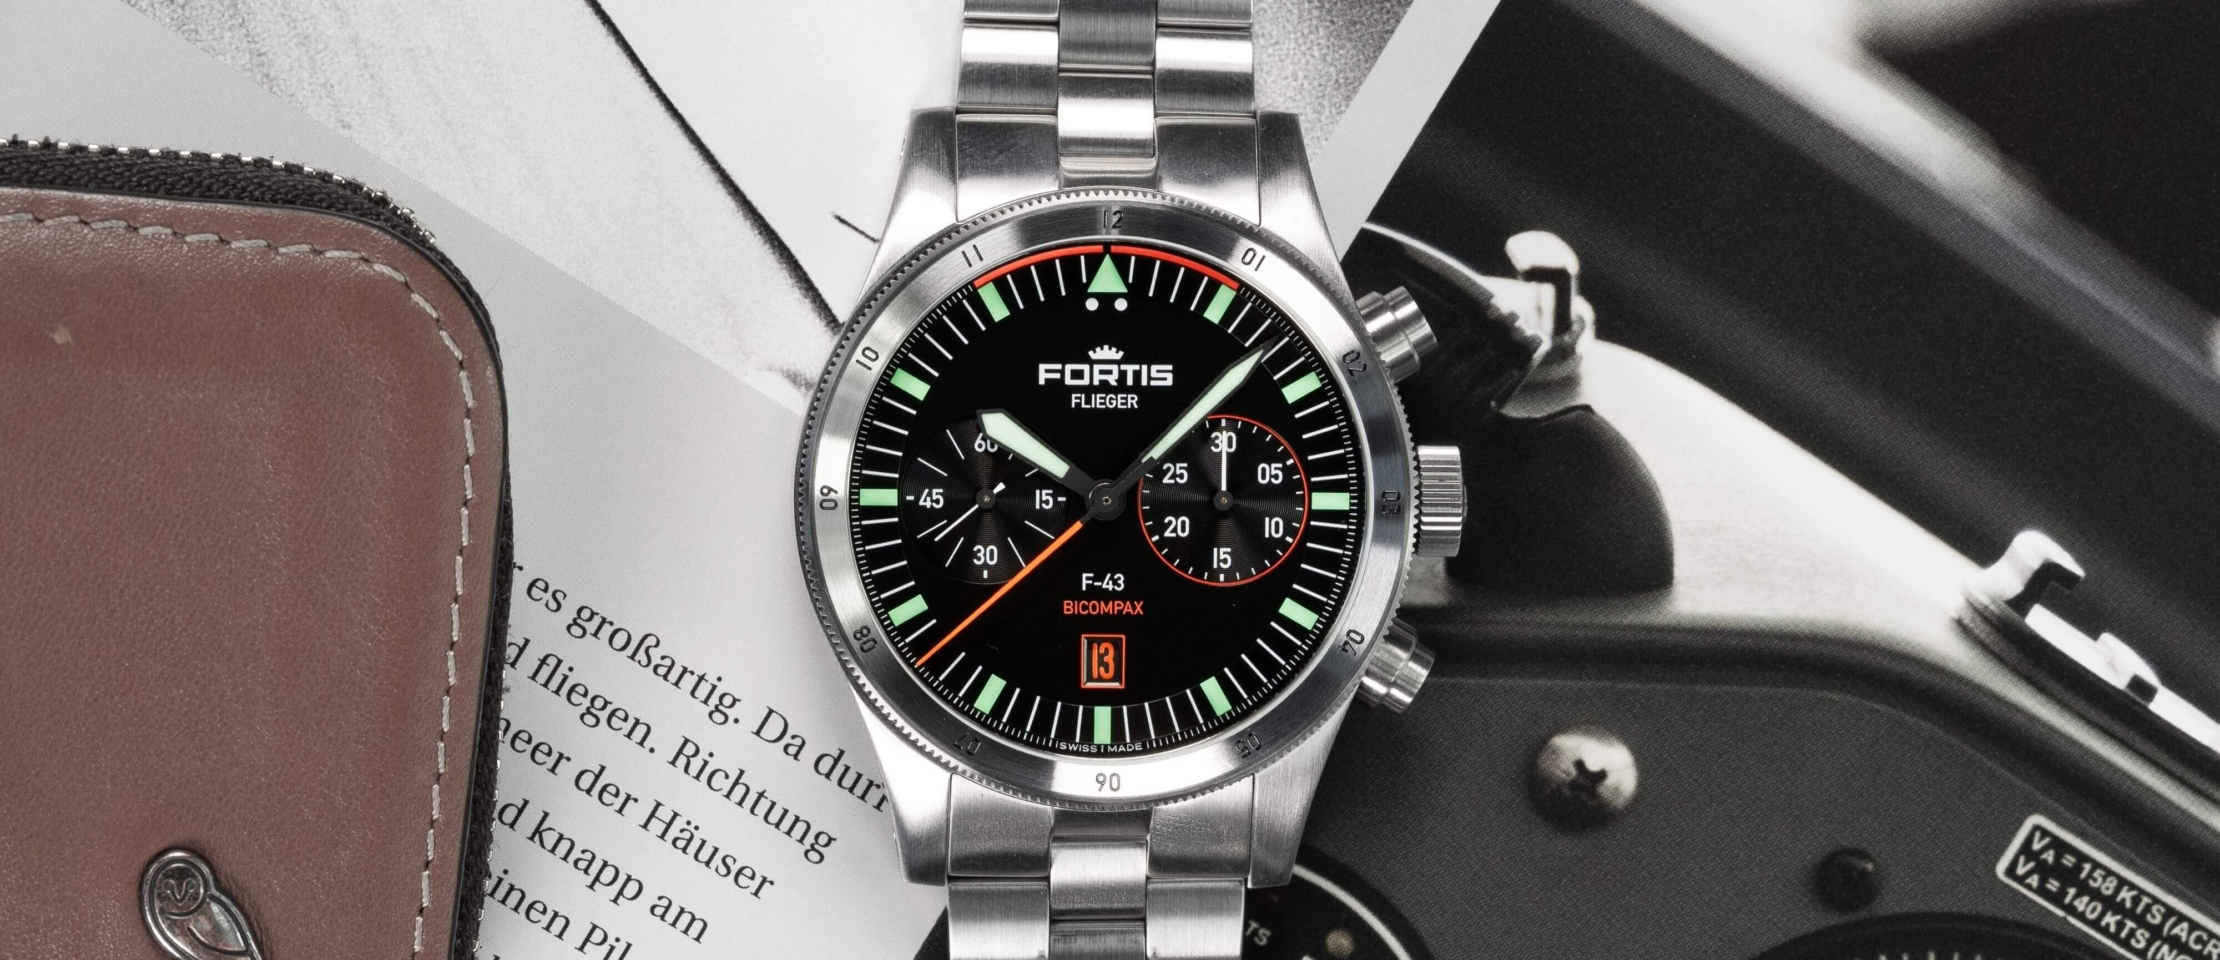 Fortis Flieger F-43 Bicompax Chronograph – So familiar and yet fundamentally new